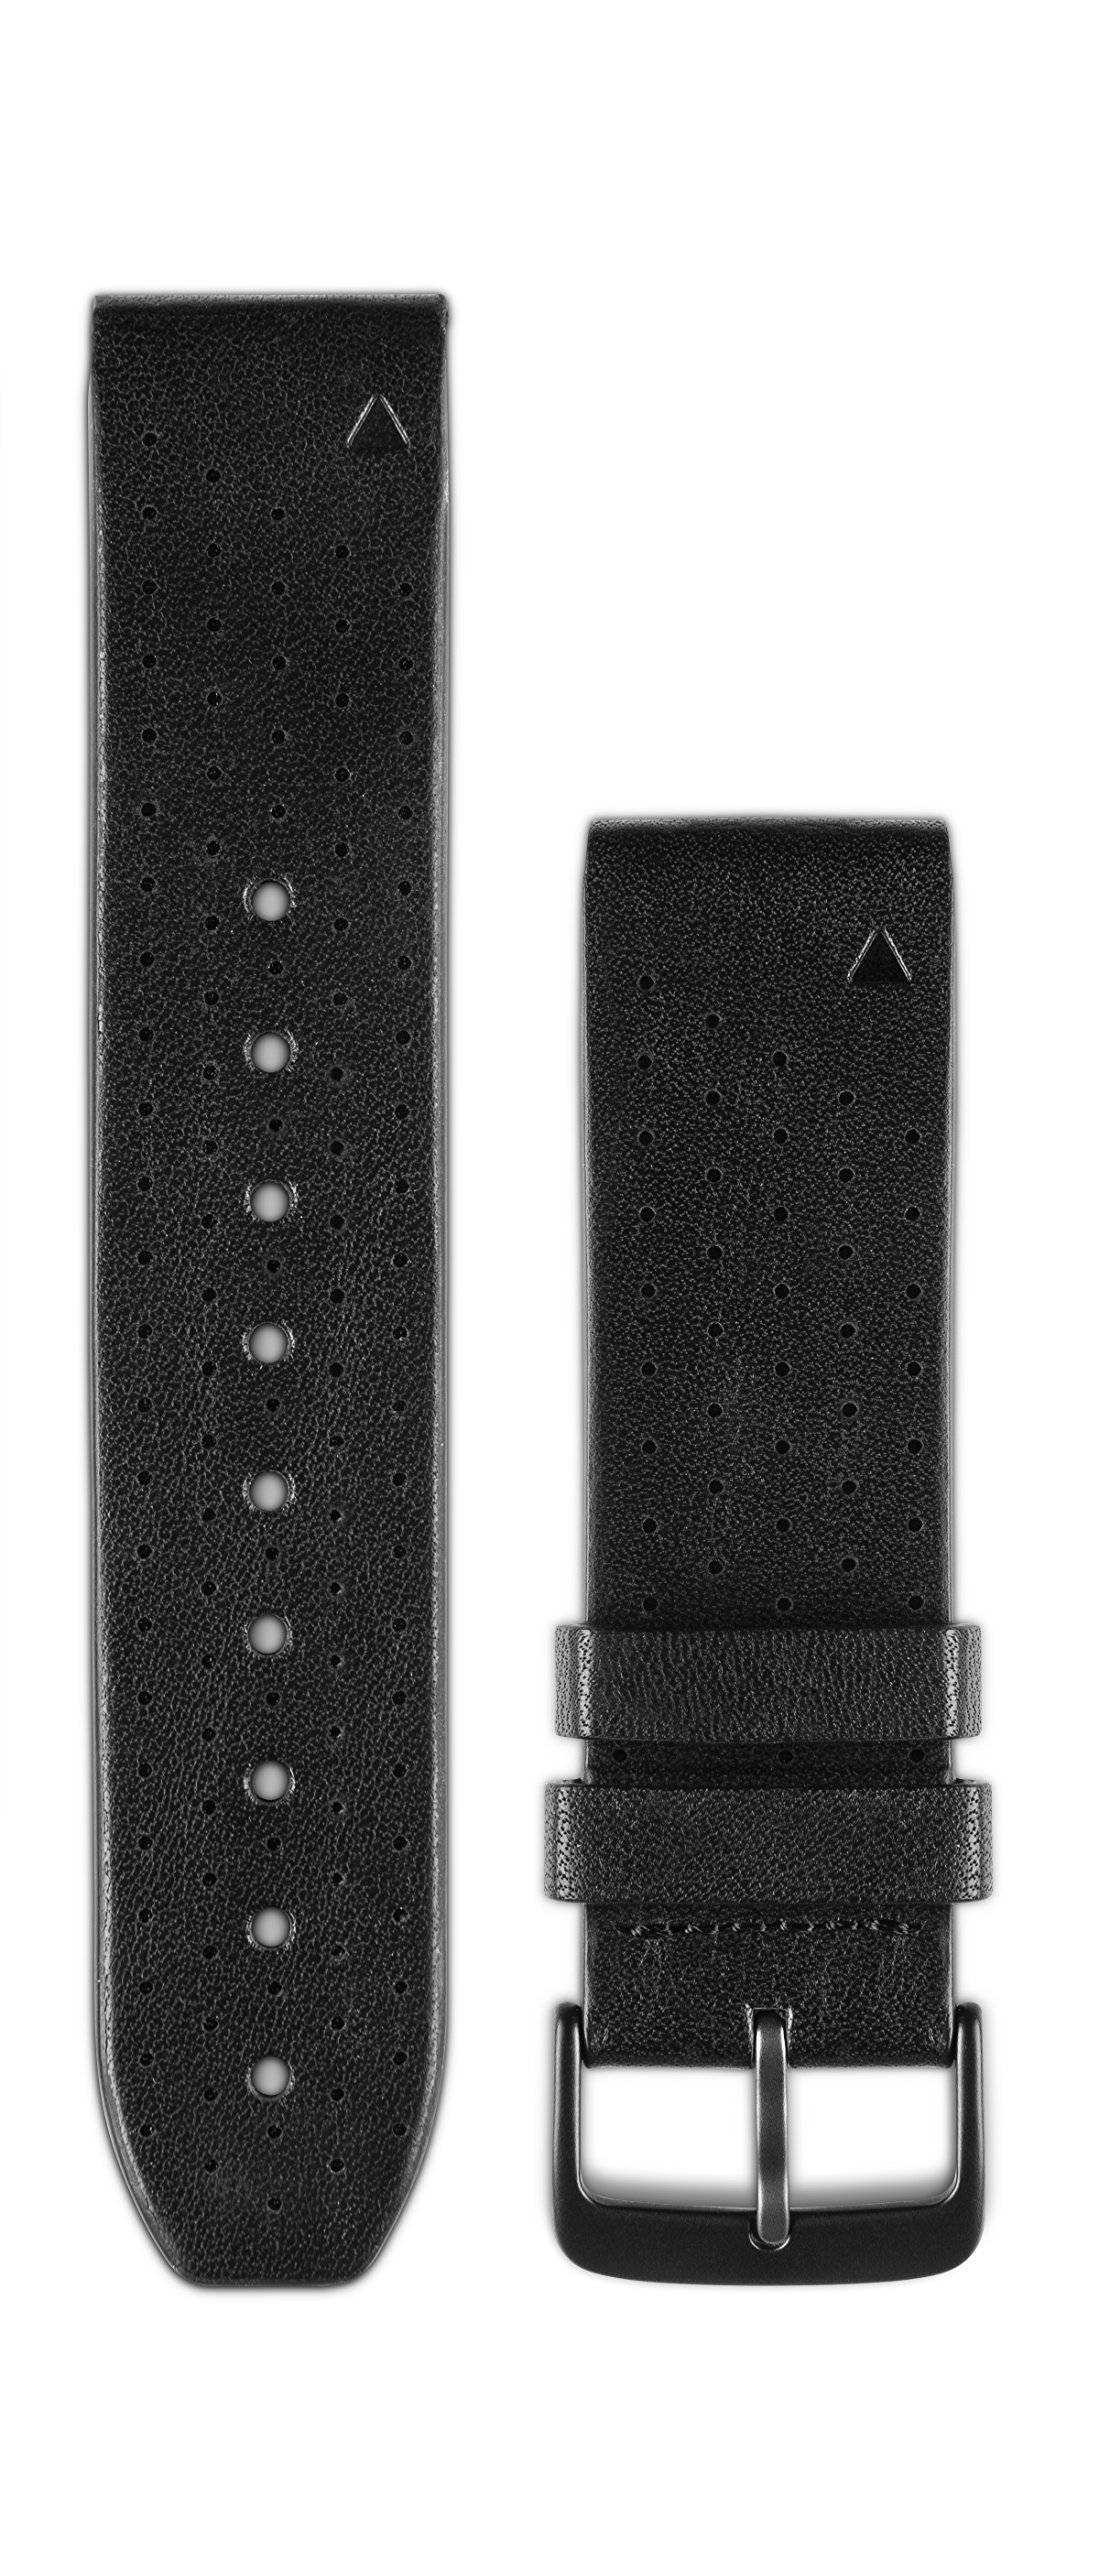 Garmin 010-12500-02 Quickfit 22 Watch Band - Black Perforated Leather - Accessory Band for Fenix 5 Plus/Fenix 5 by Garmin (Image #1)